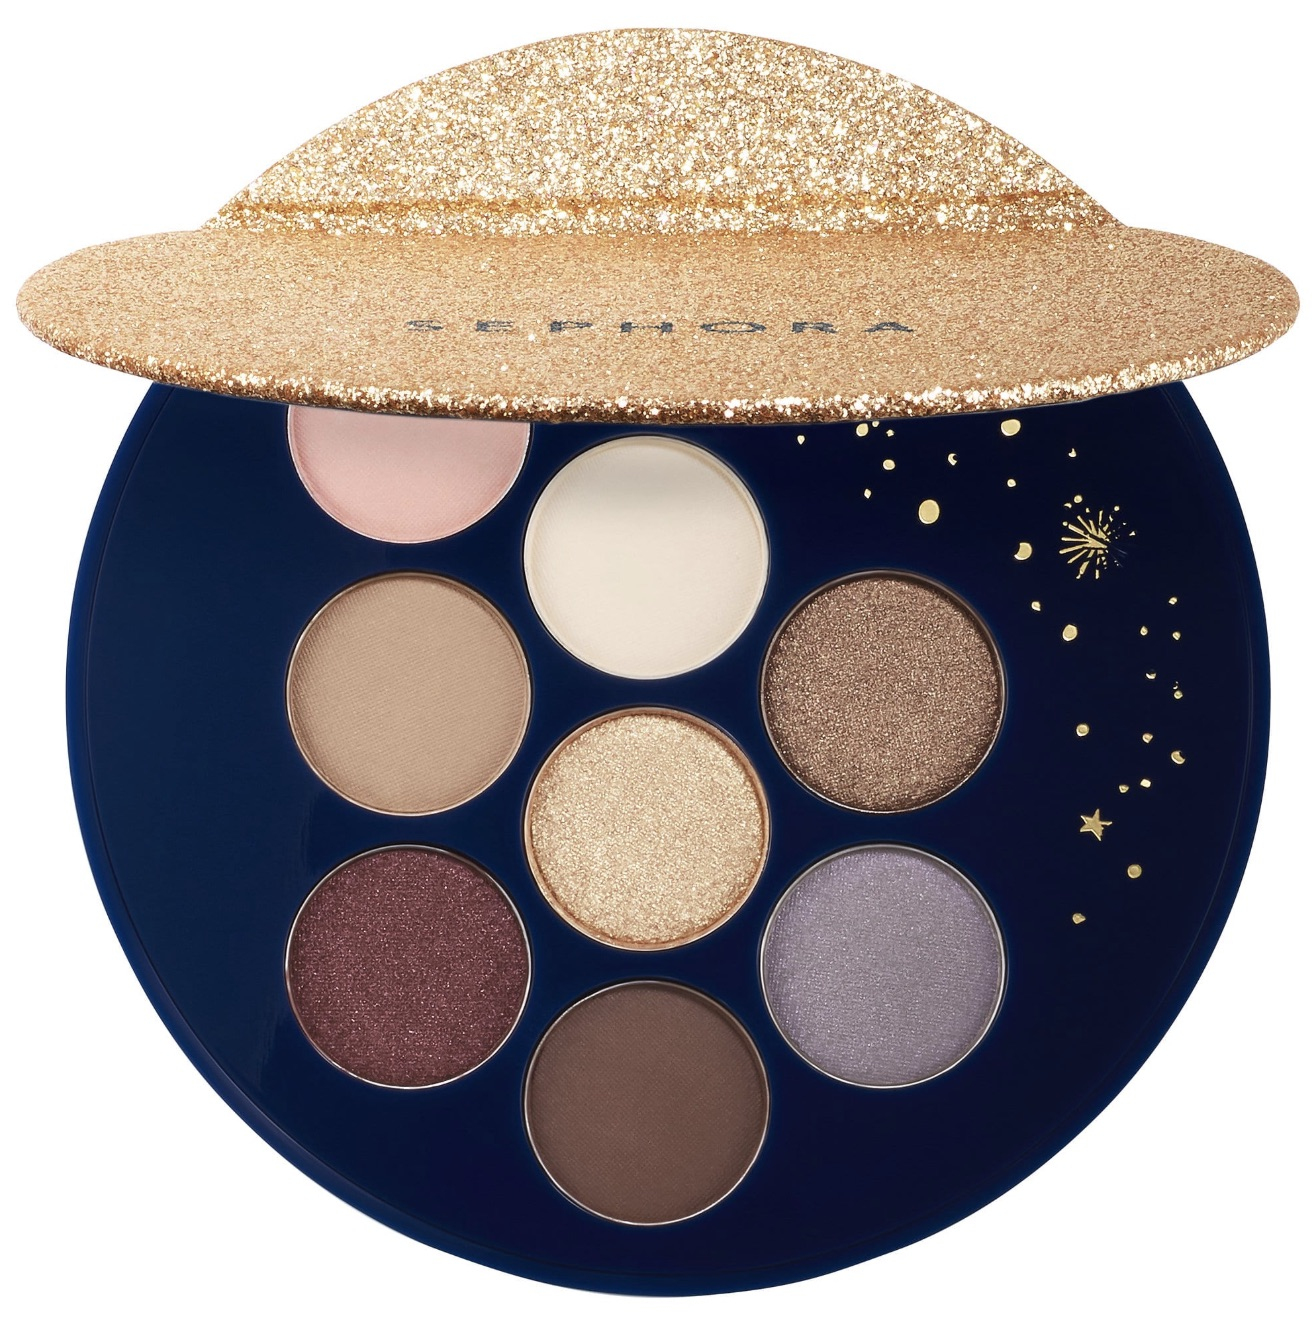 Cool affordable gifts under $15: Enchanted Sky shadow palette by Sephora Collection